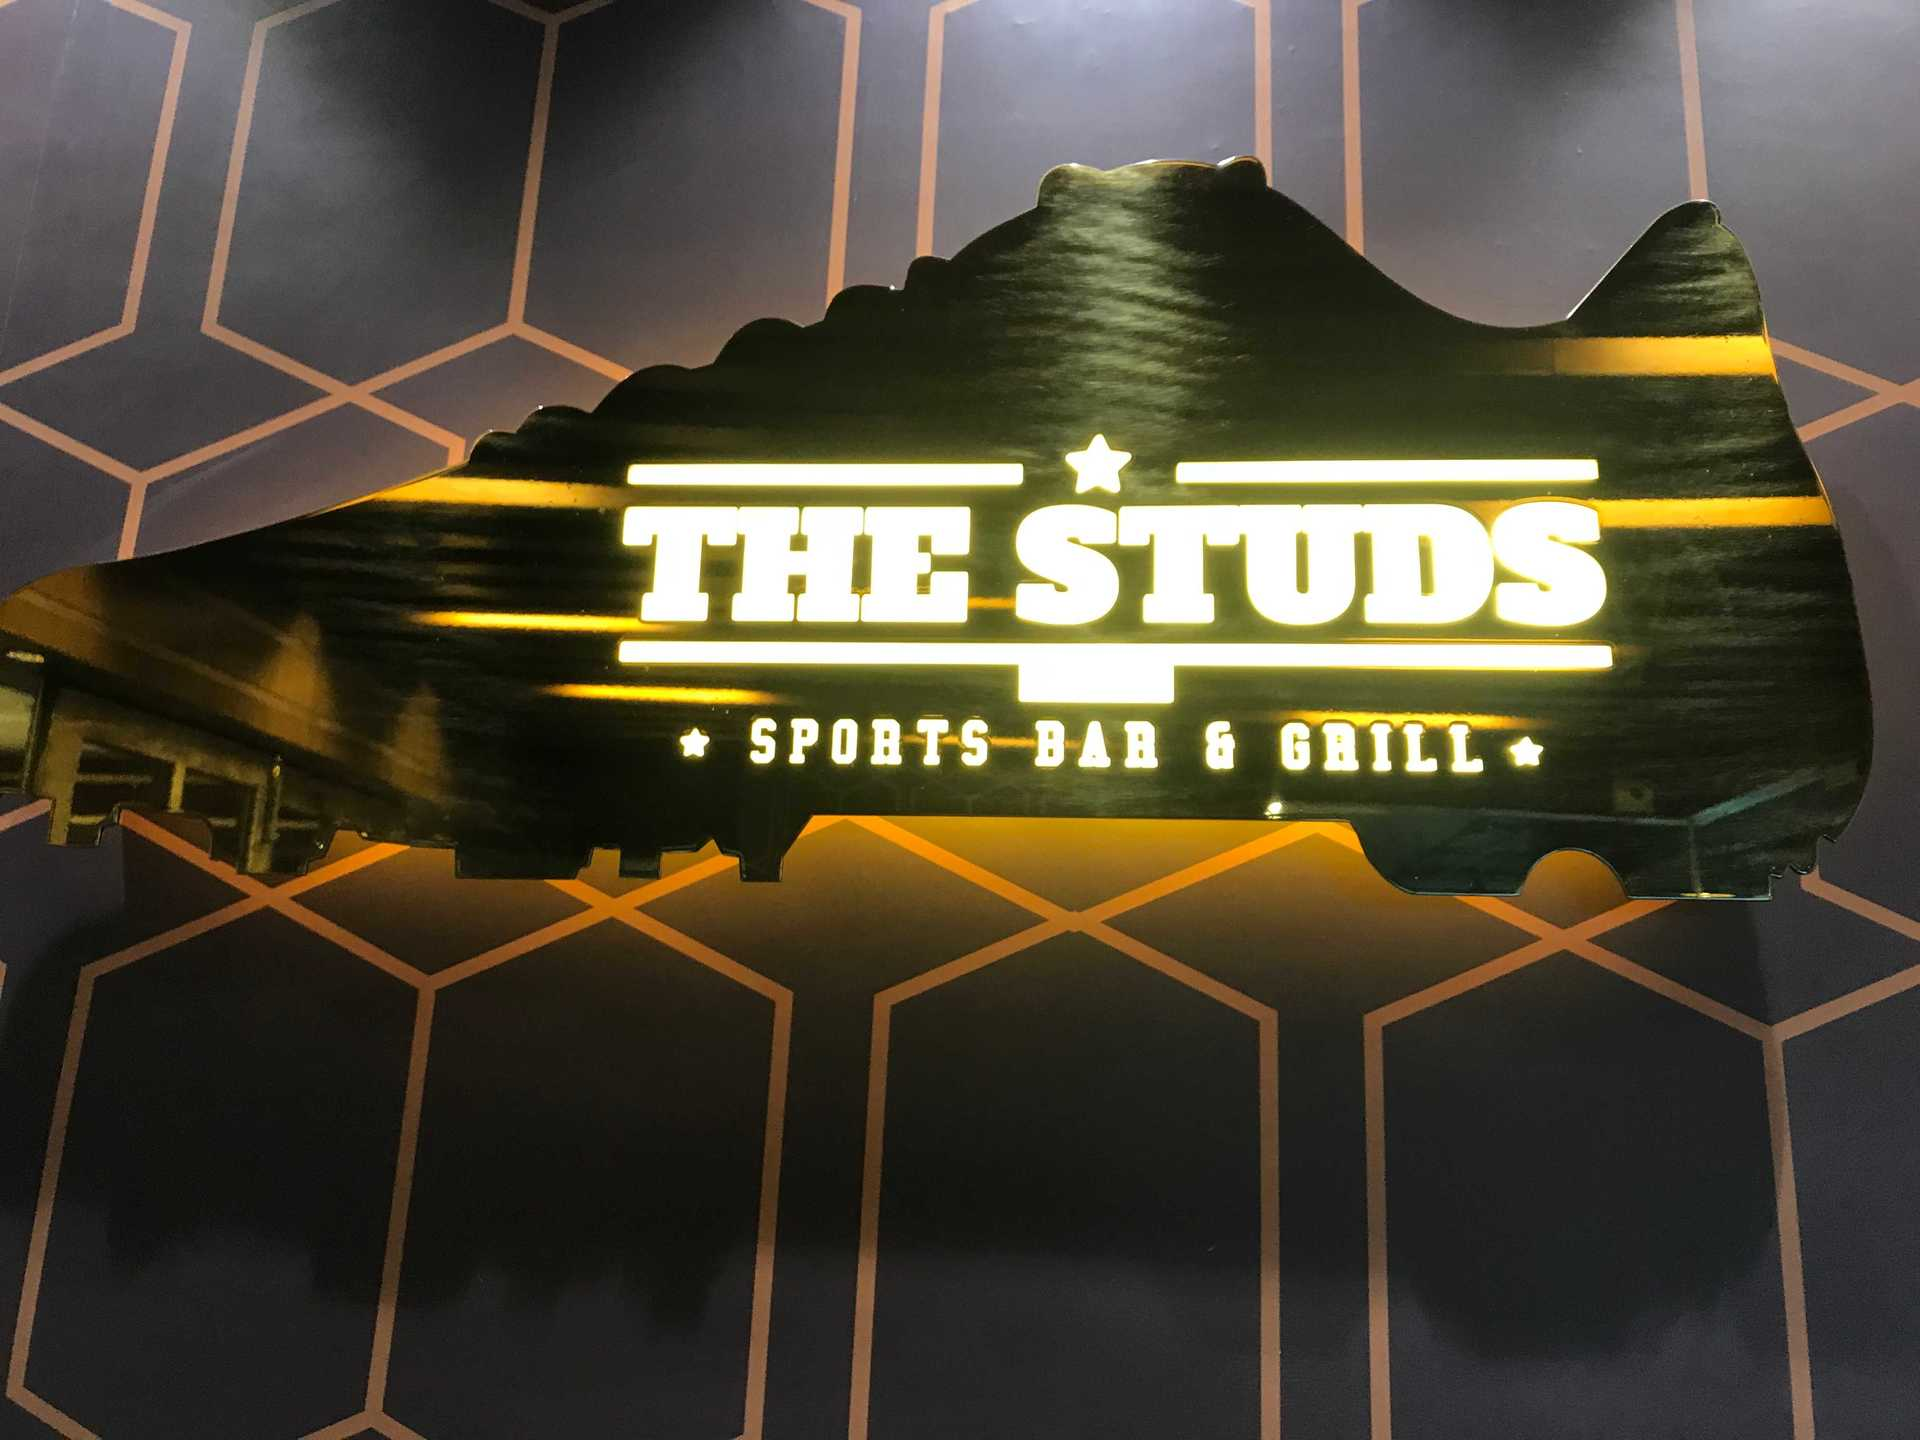 Honest Review of The Studs Bar. image